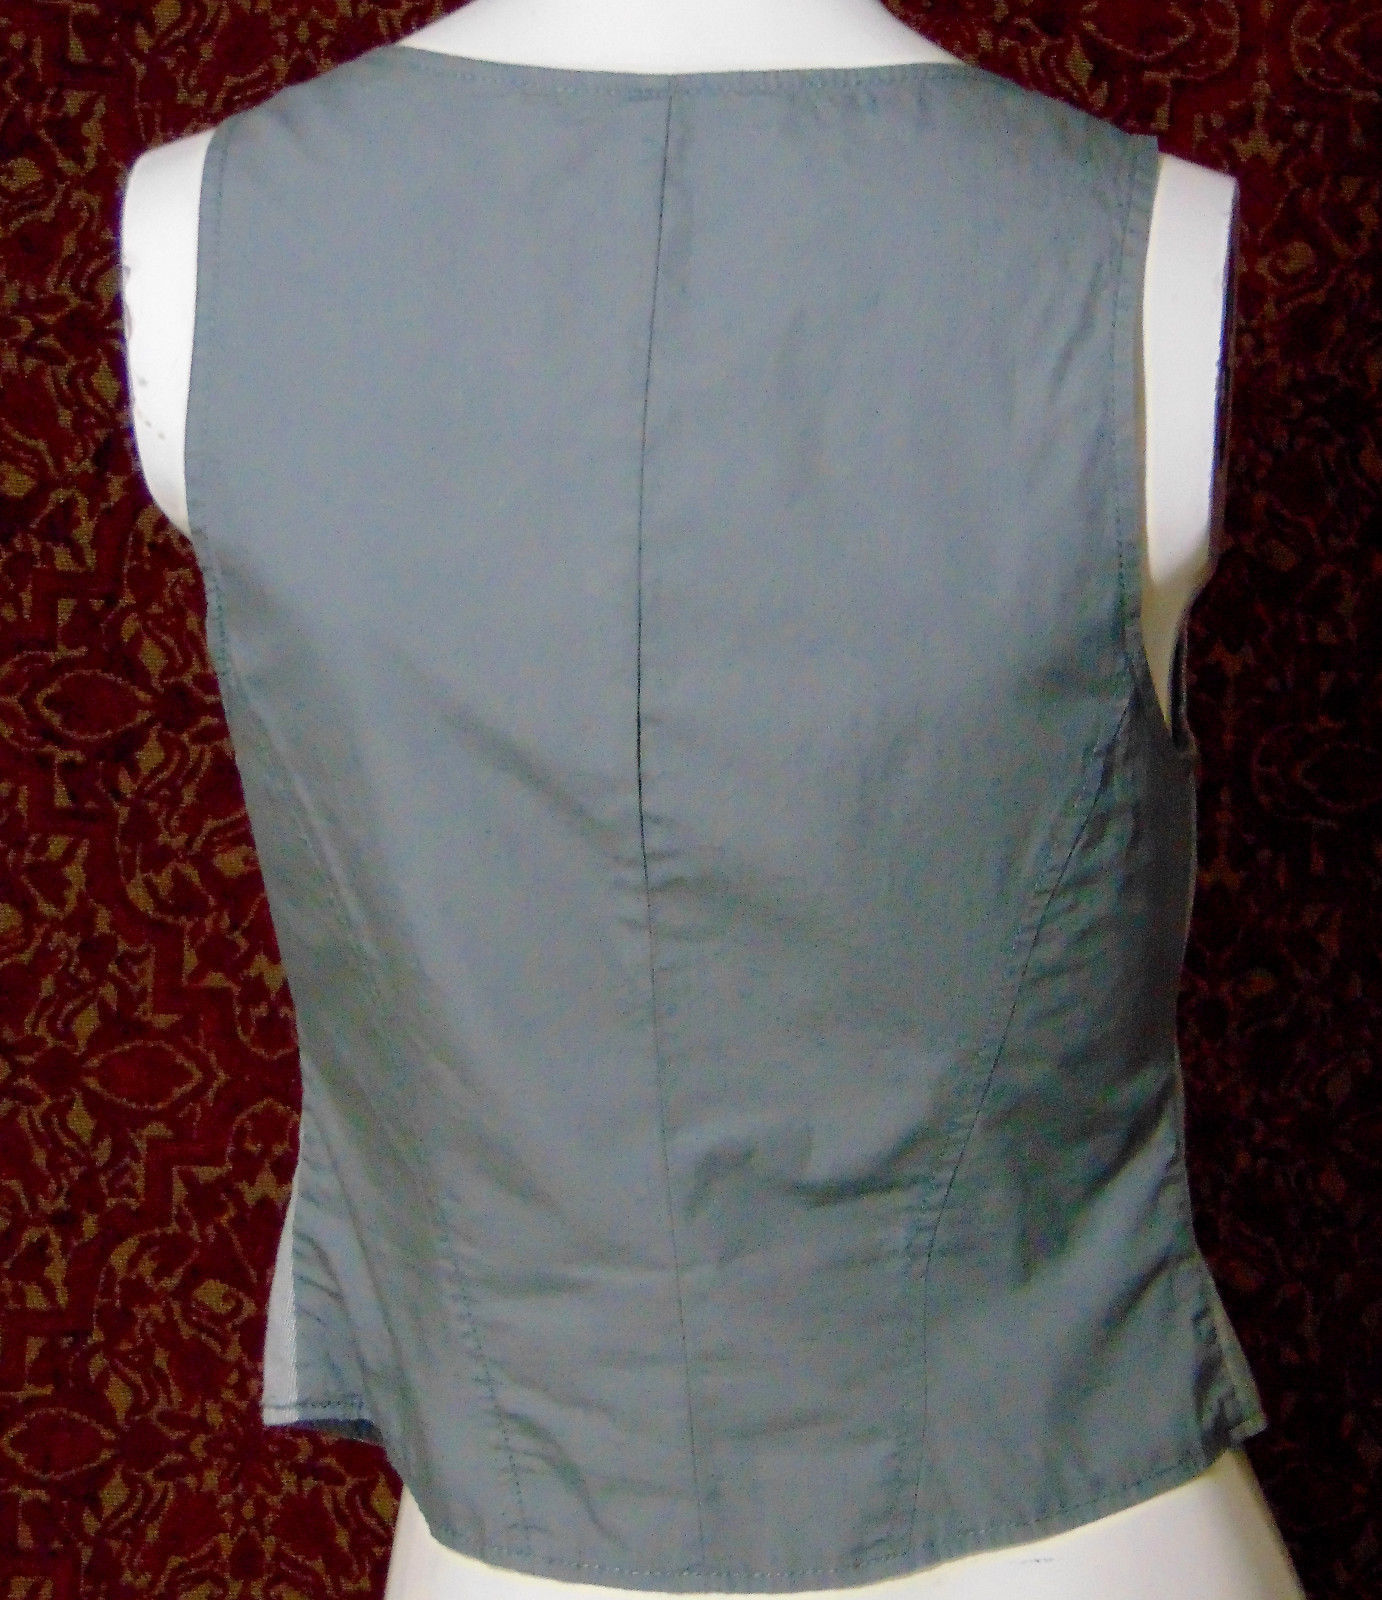 AMERICAN EAGLE OUTFITTERS gray cotton vest S/P (T49-02B8G)